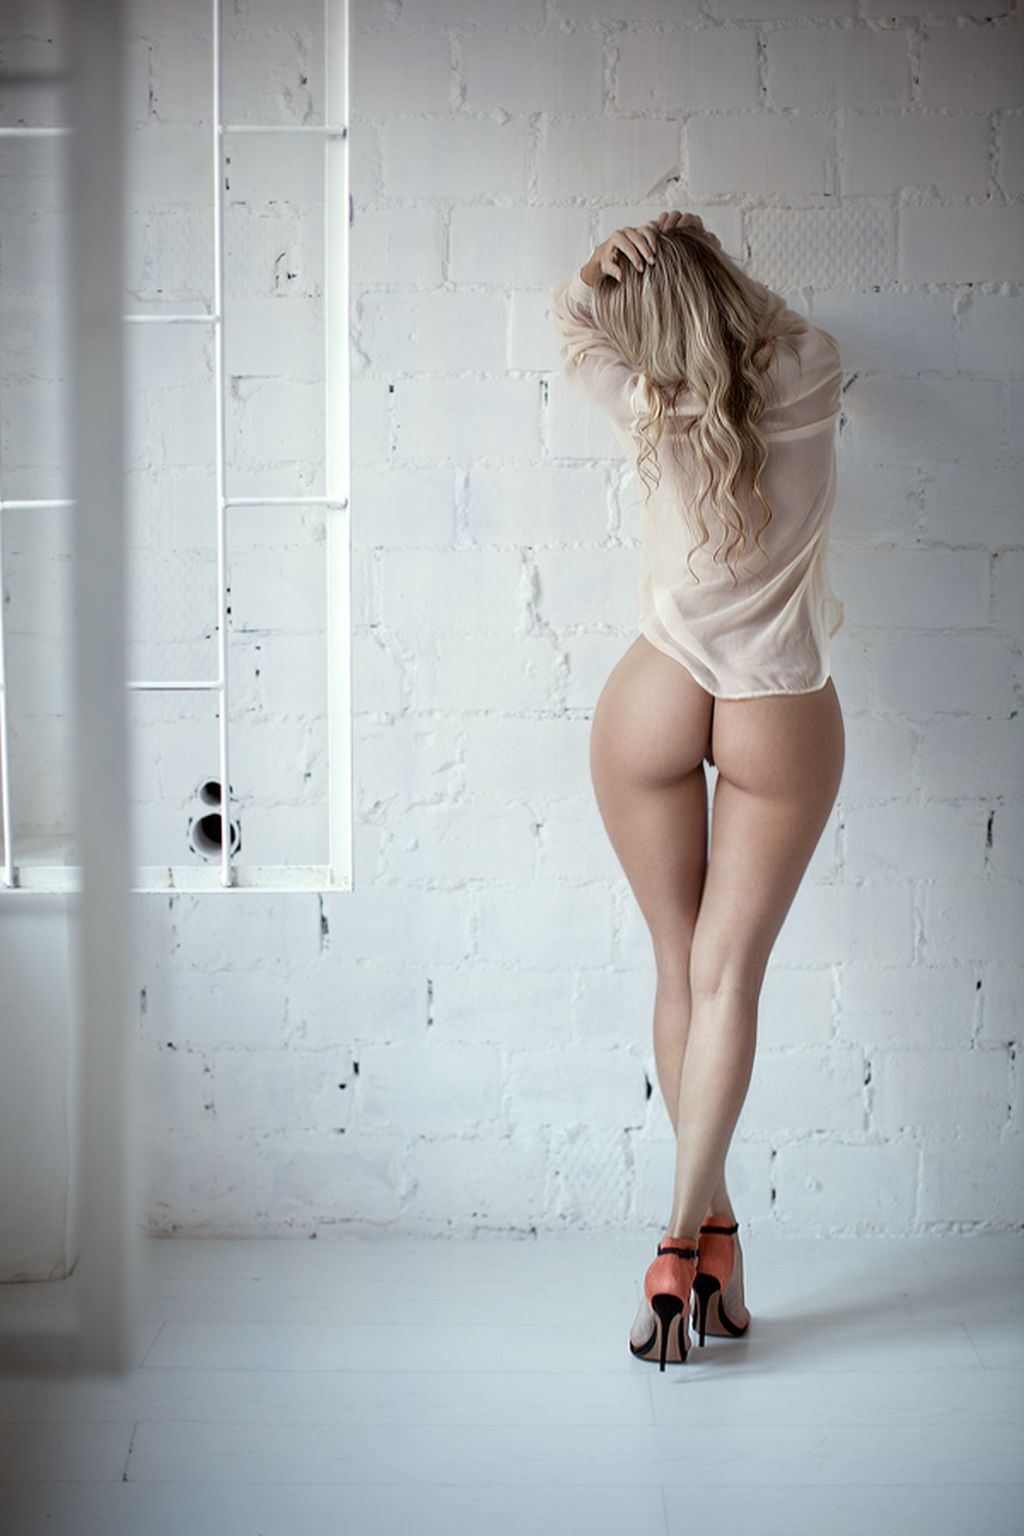 Long legs rear view nude and shame!